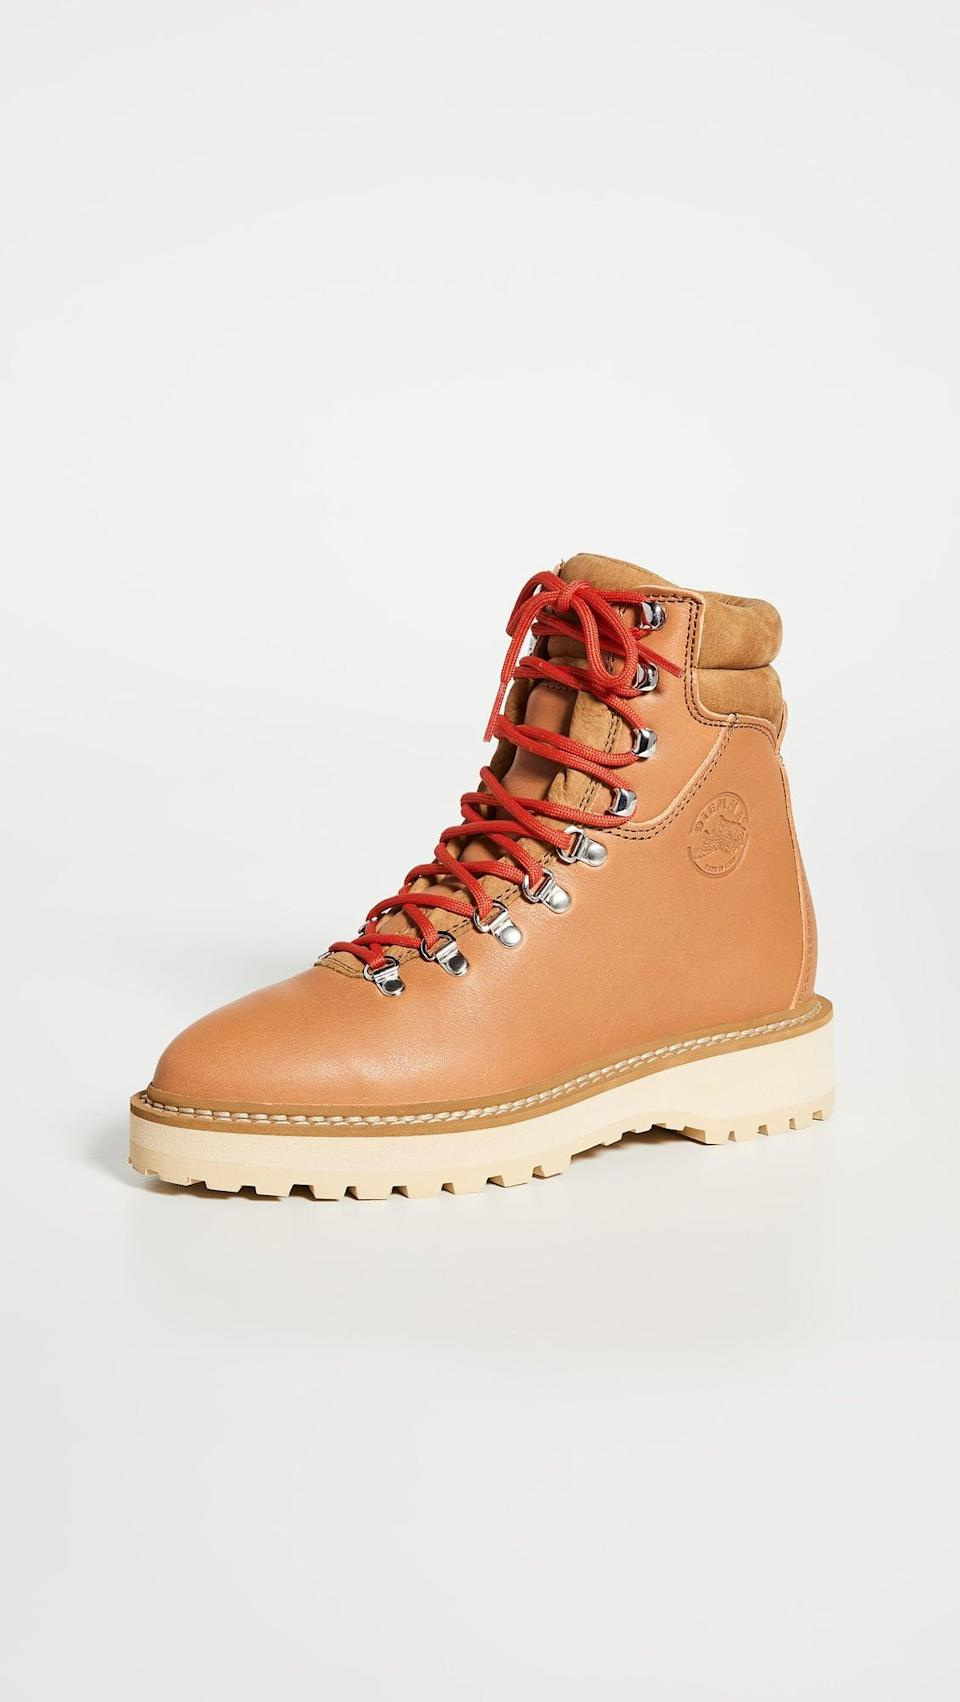 <p>We love the look of these <span>Diemme Monfumo Lace Up Boots</span> ($321, originally $459). They're tough, but the red laces add a little something extra, and we like the pop of color.</p>